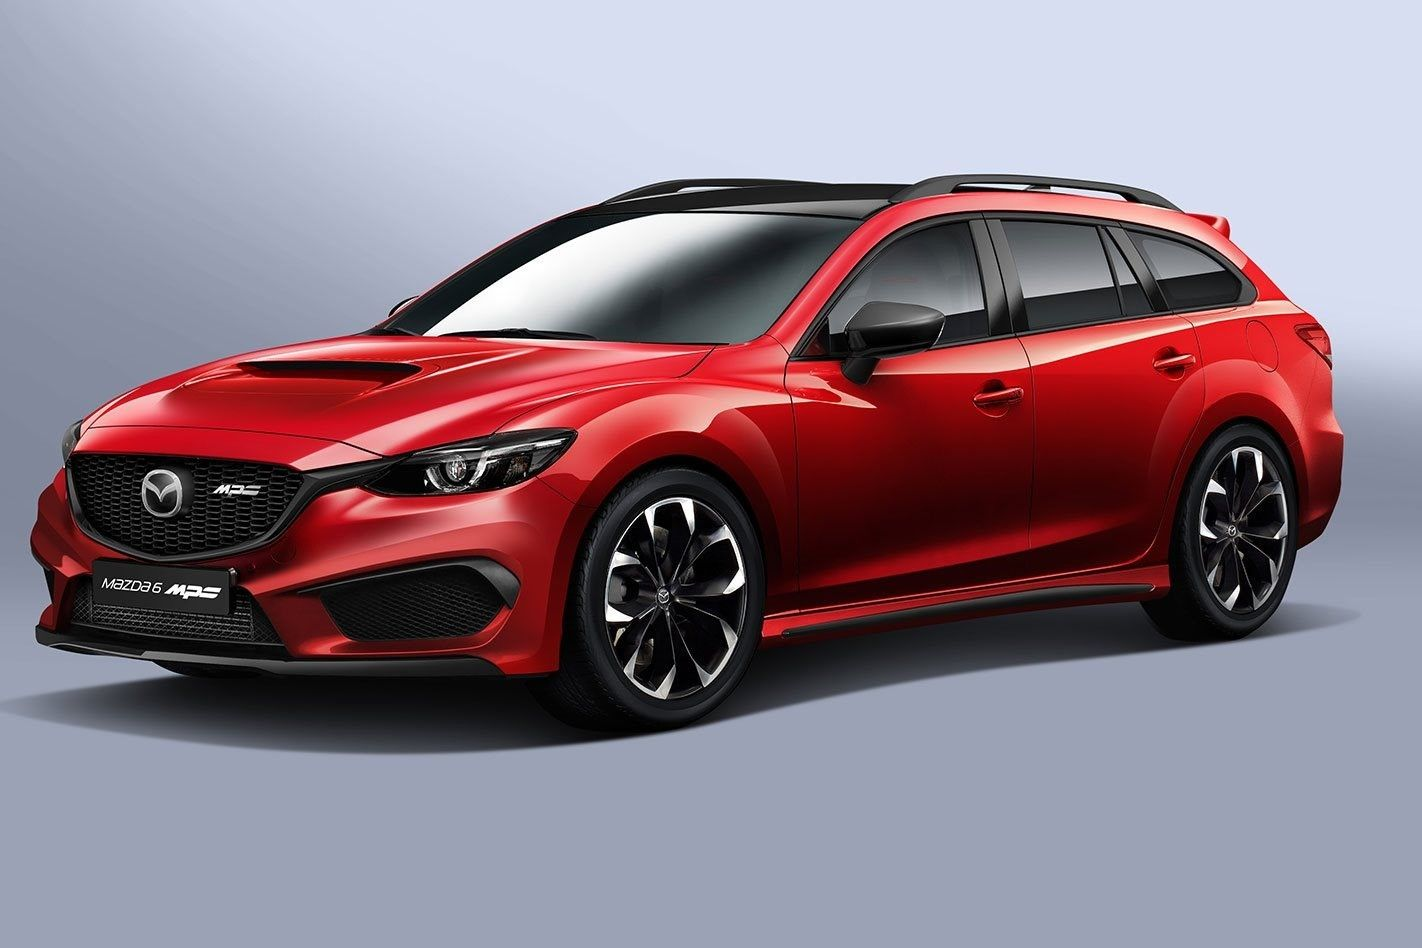 2019 Mazda 3 Mps Sports Release, Specs and Review